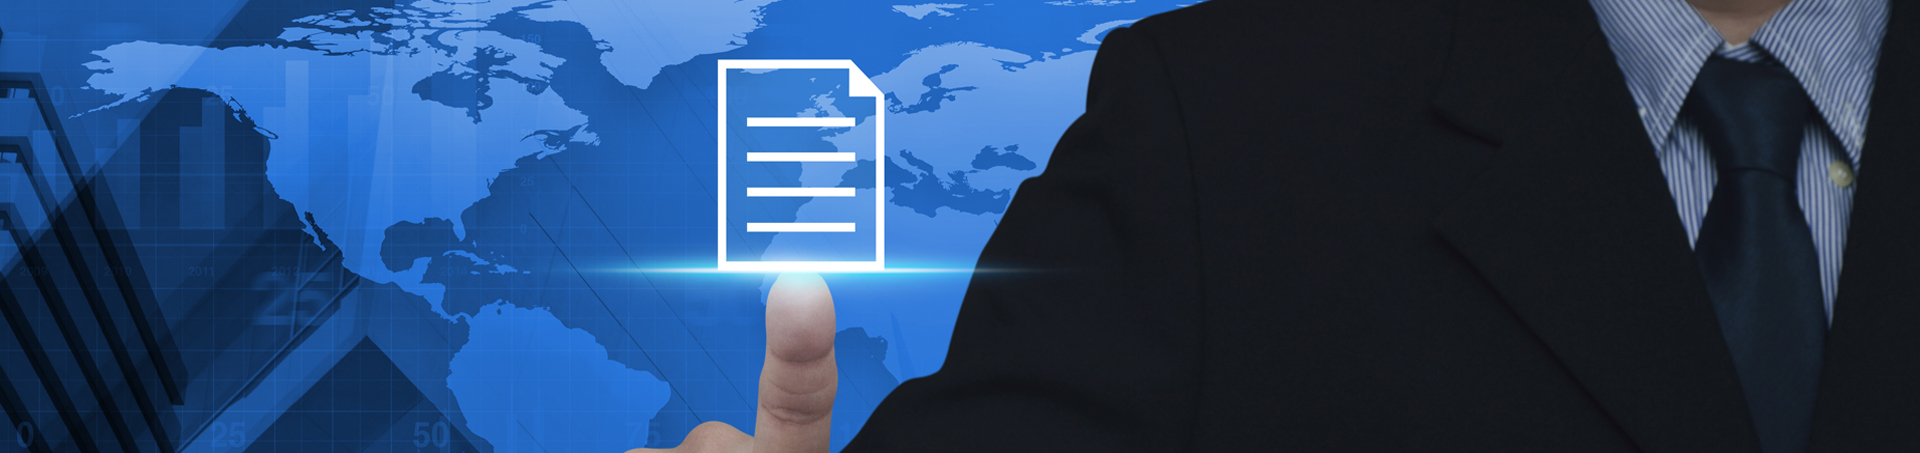 Document management workflow services